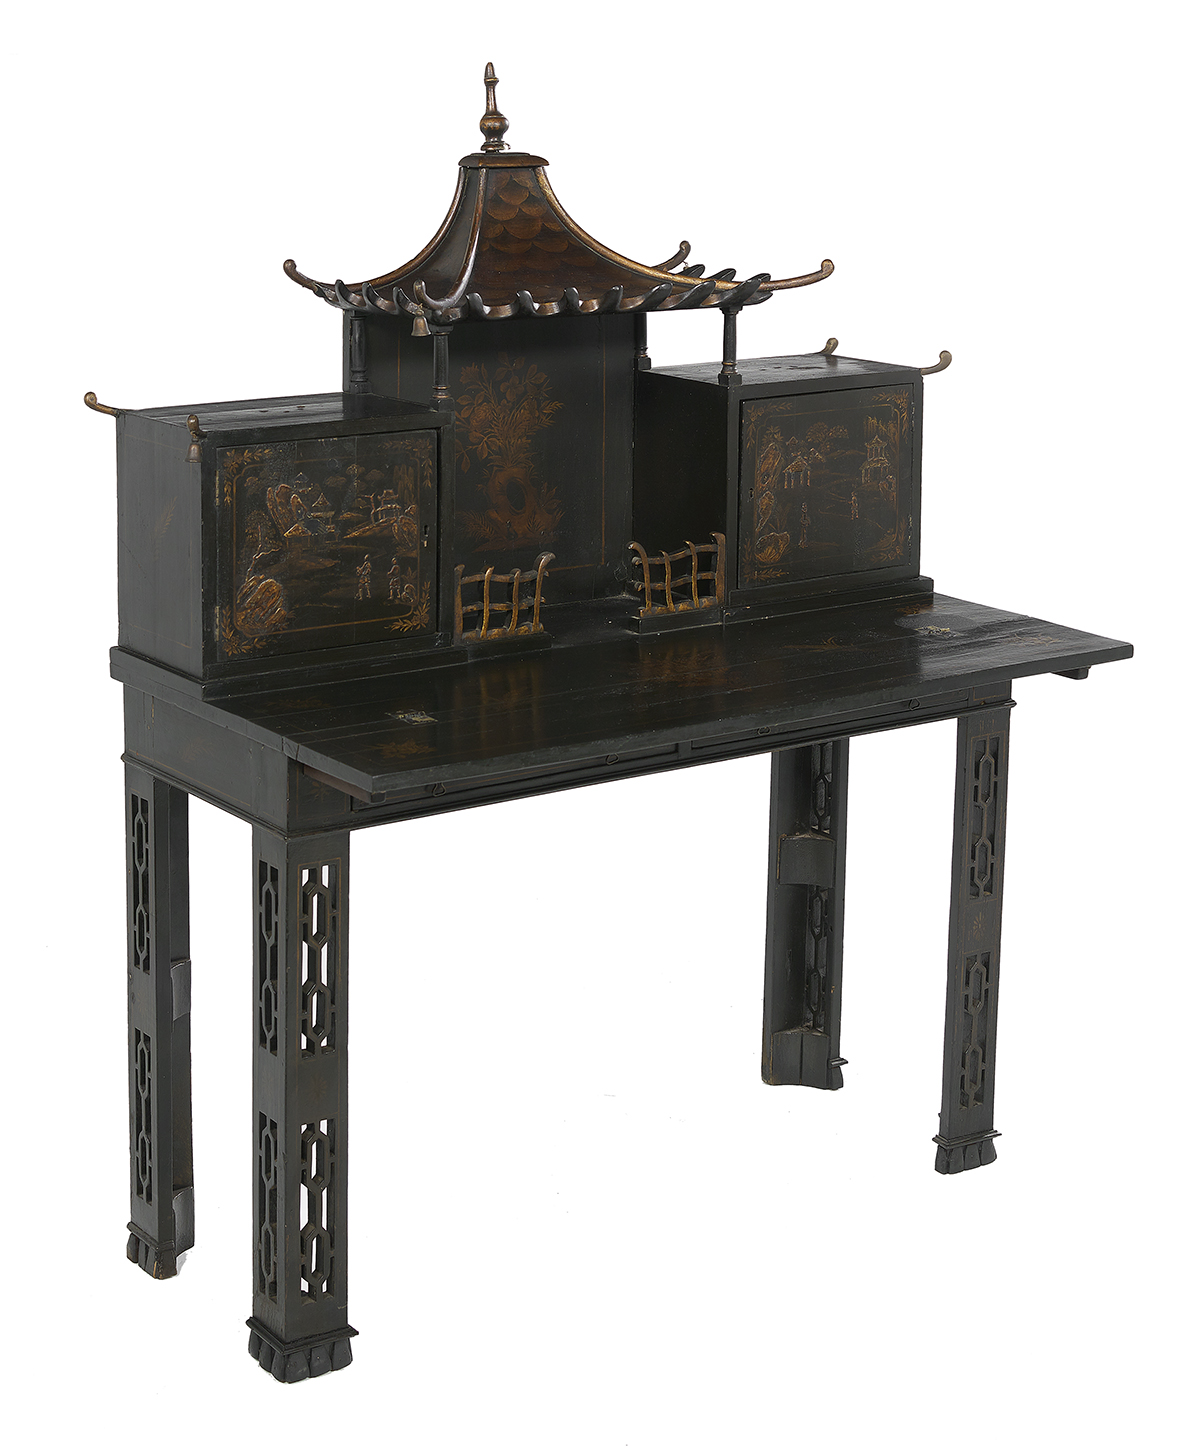 Lot 468 - Black-Lacquered Chinoiserie-Decorated Desk